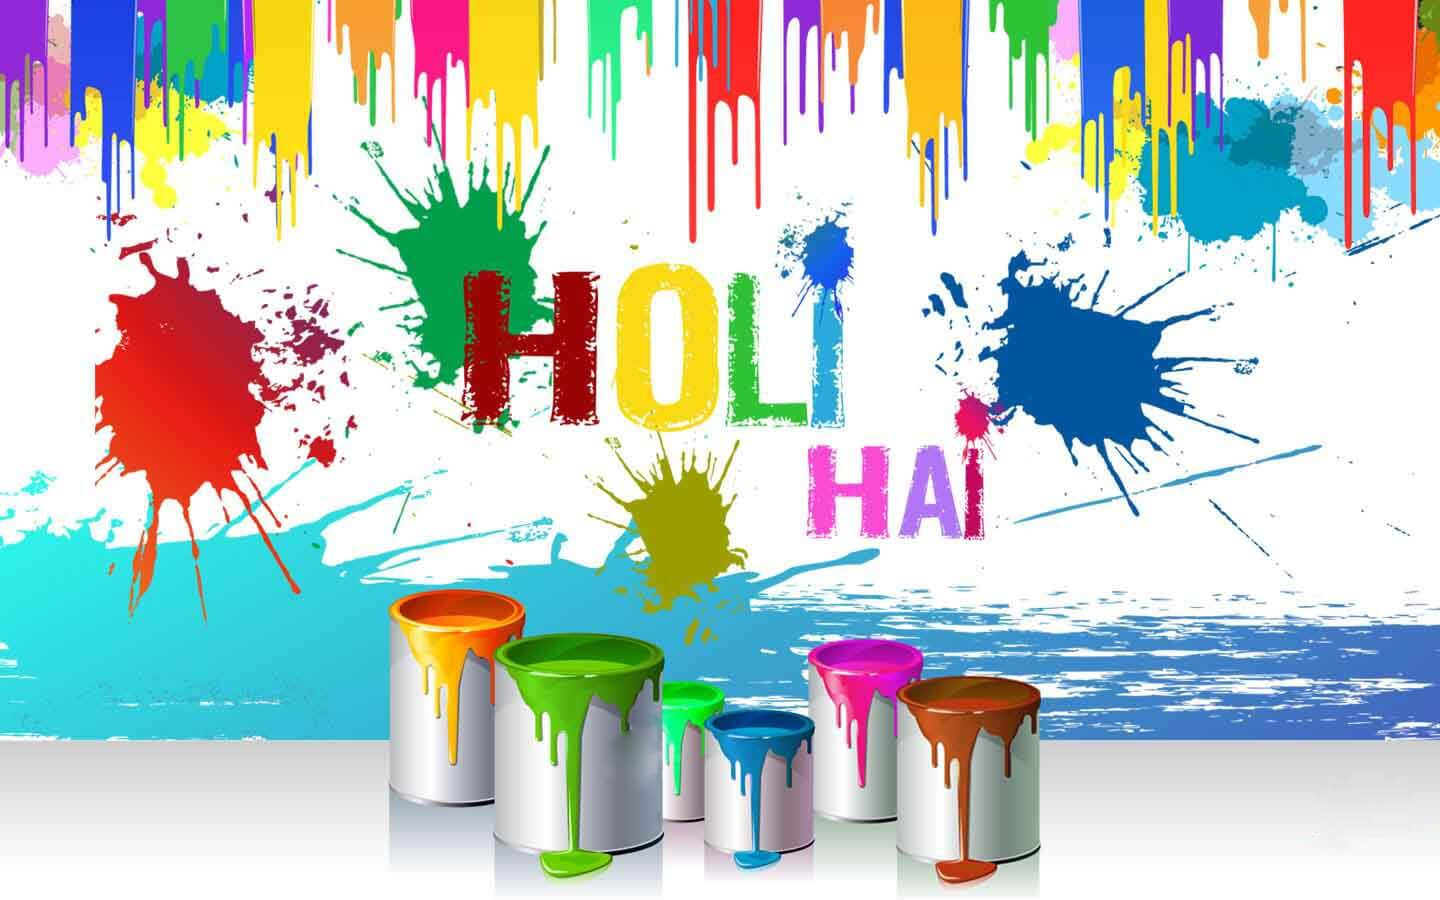 Best Happy Holi HD Cover Images for Facebook